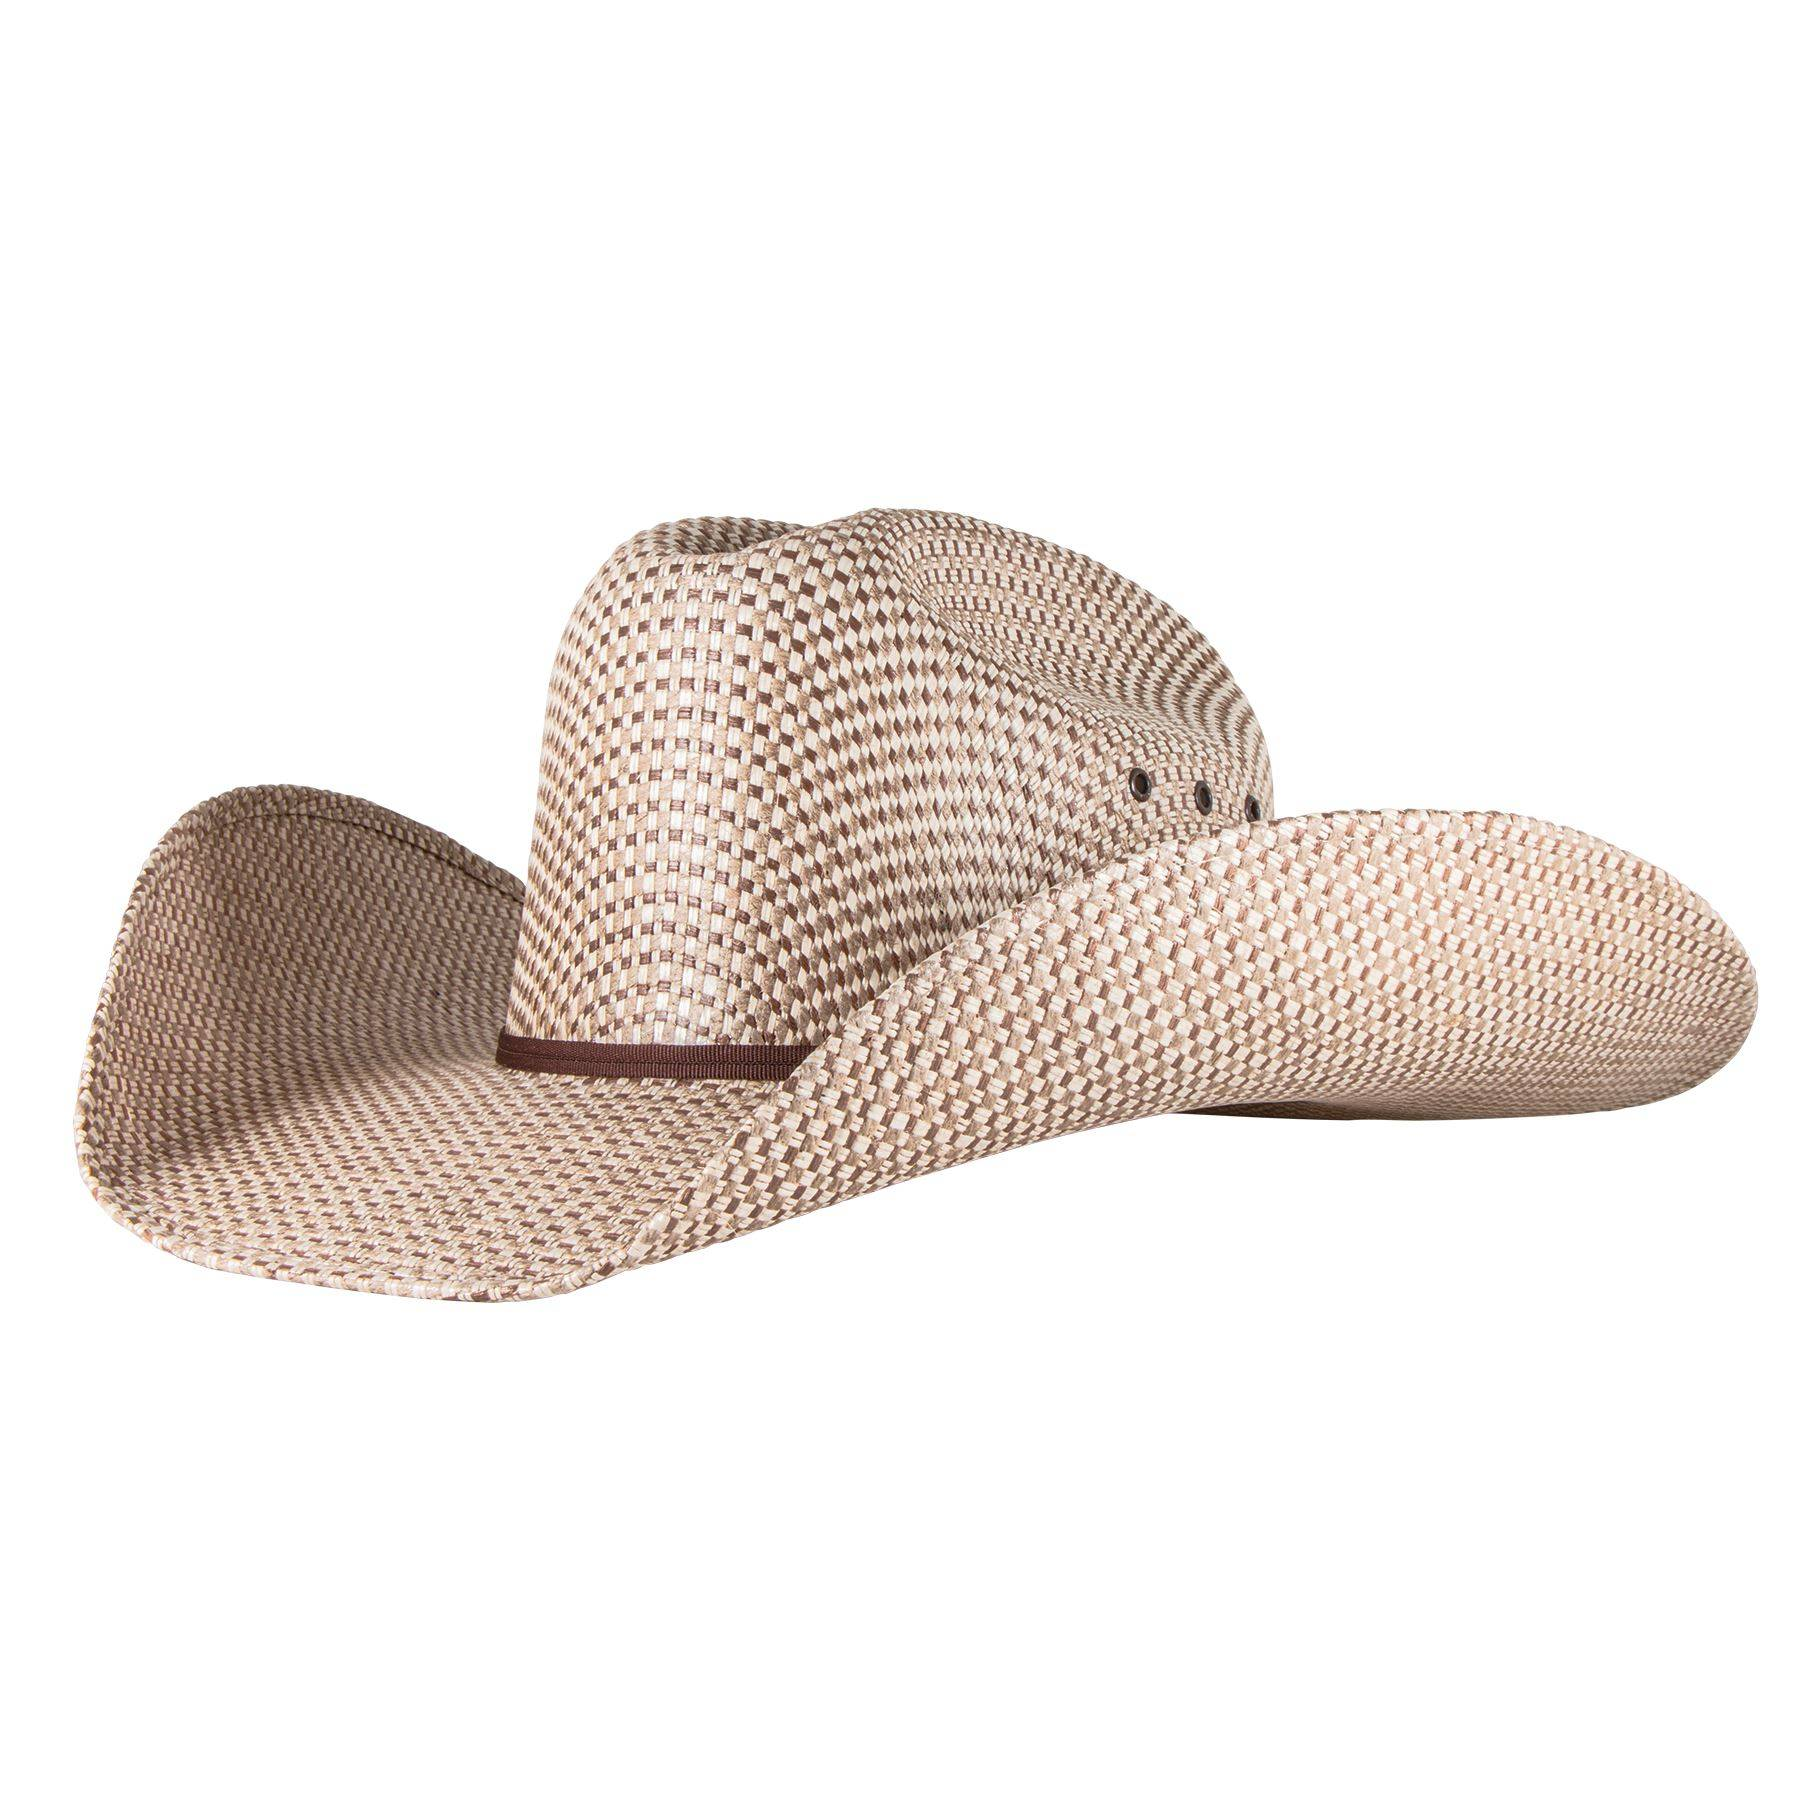 Rodeo King Rancher 3 Tone Straw Hat a28b8377508